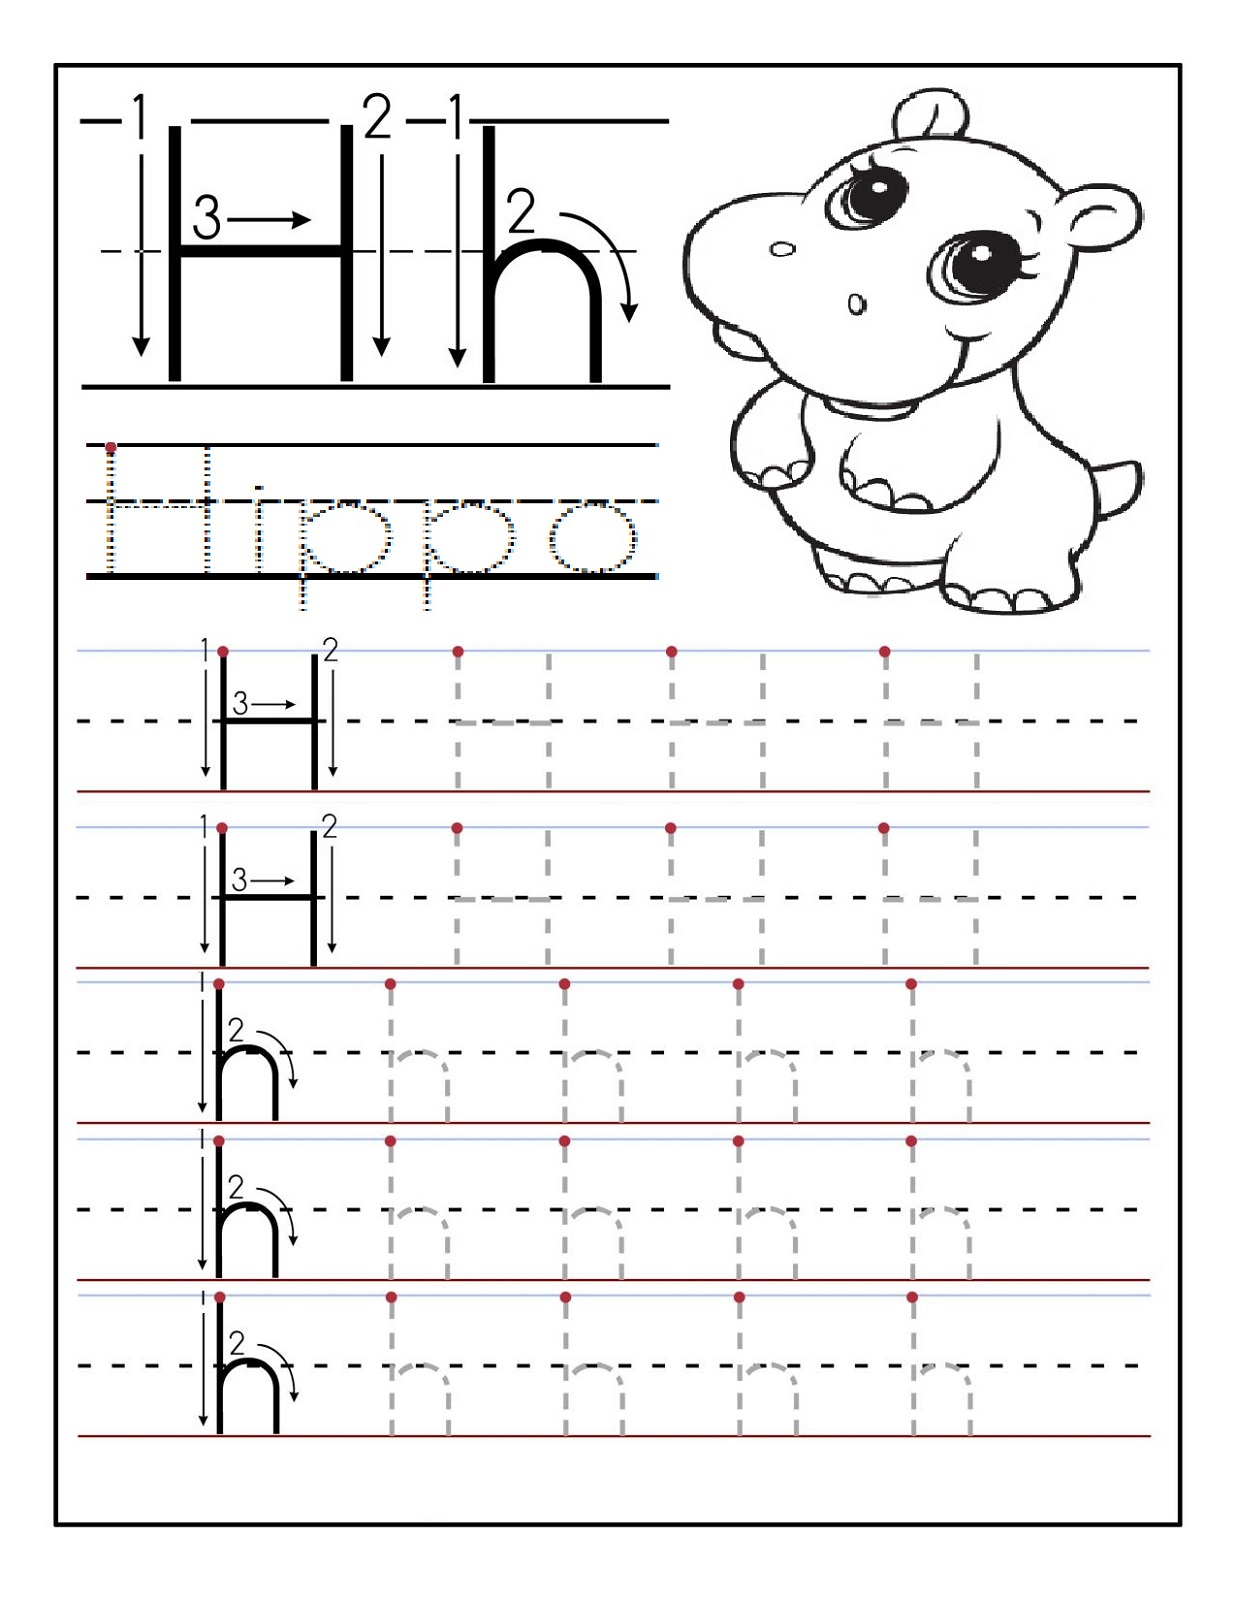 Preschool Alphabet Worksheets | Activity Shelter